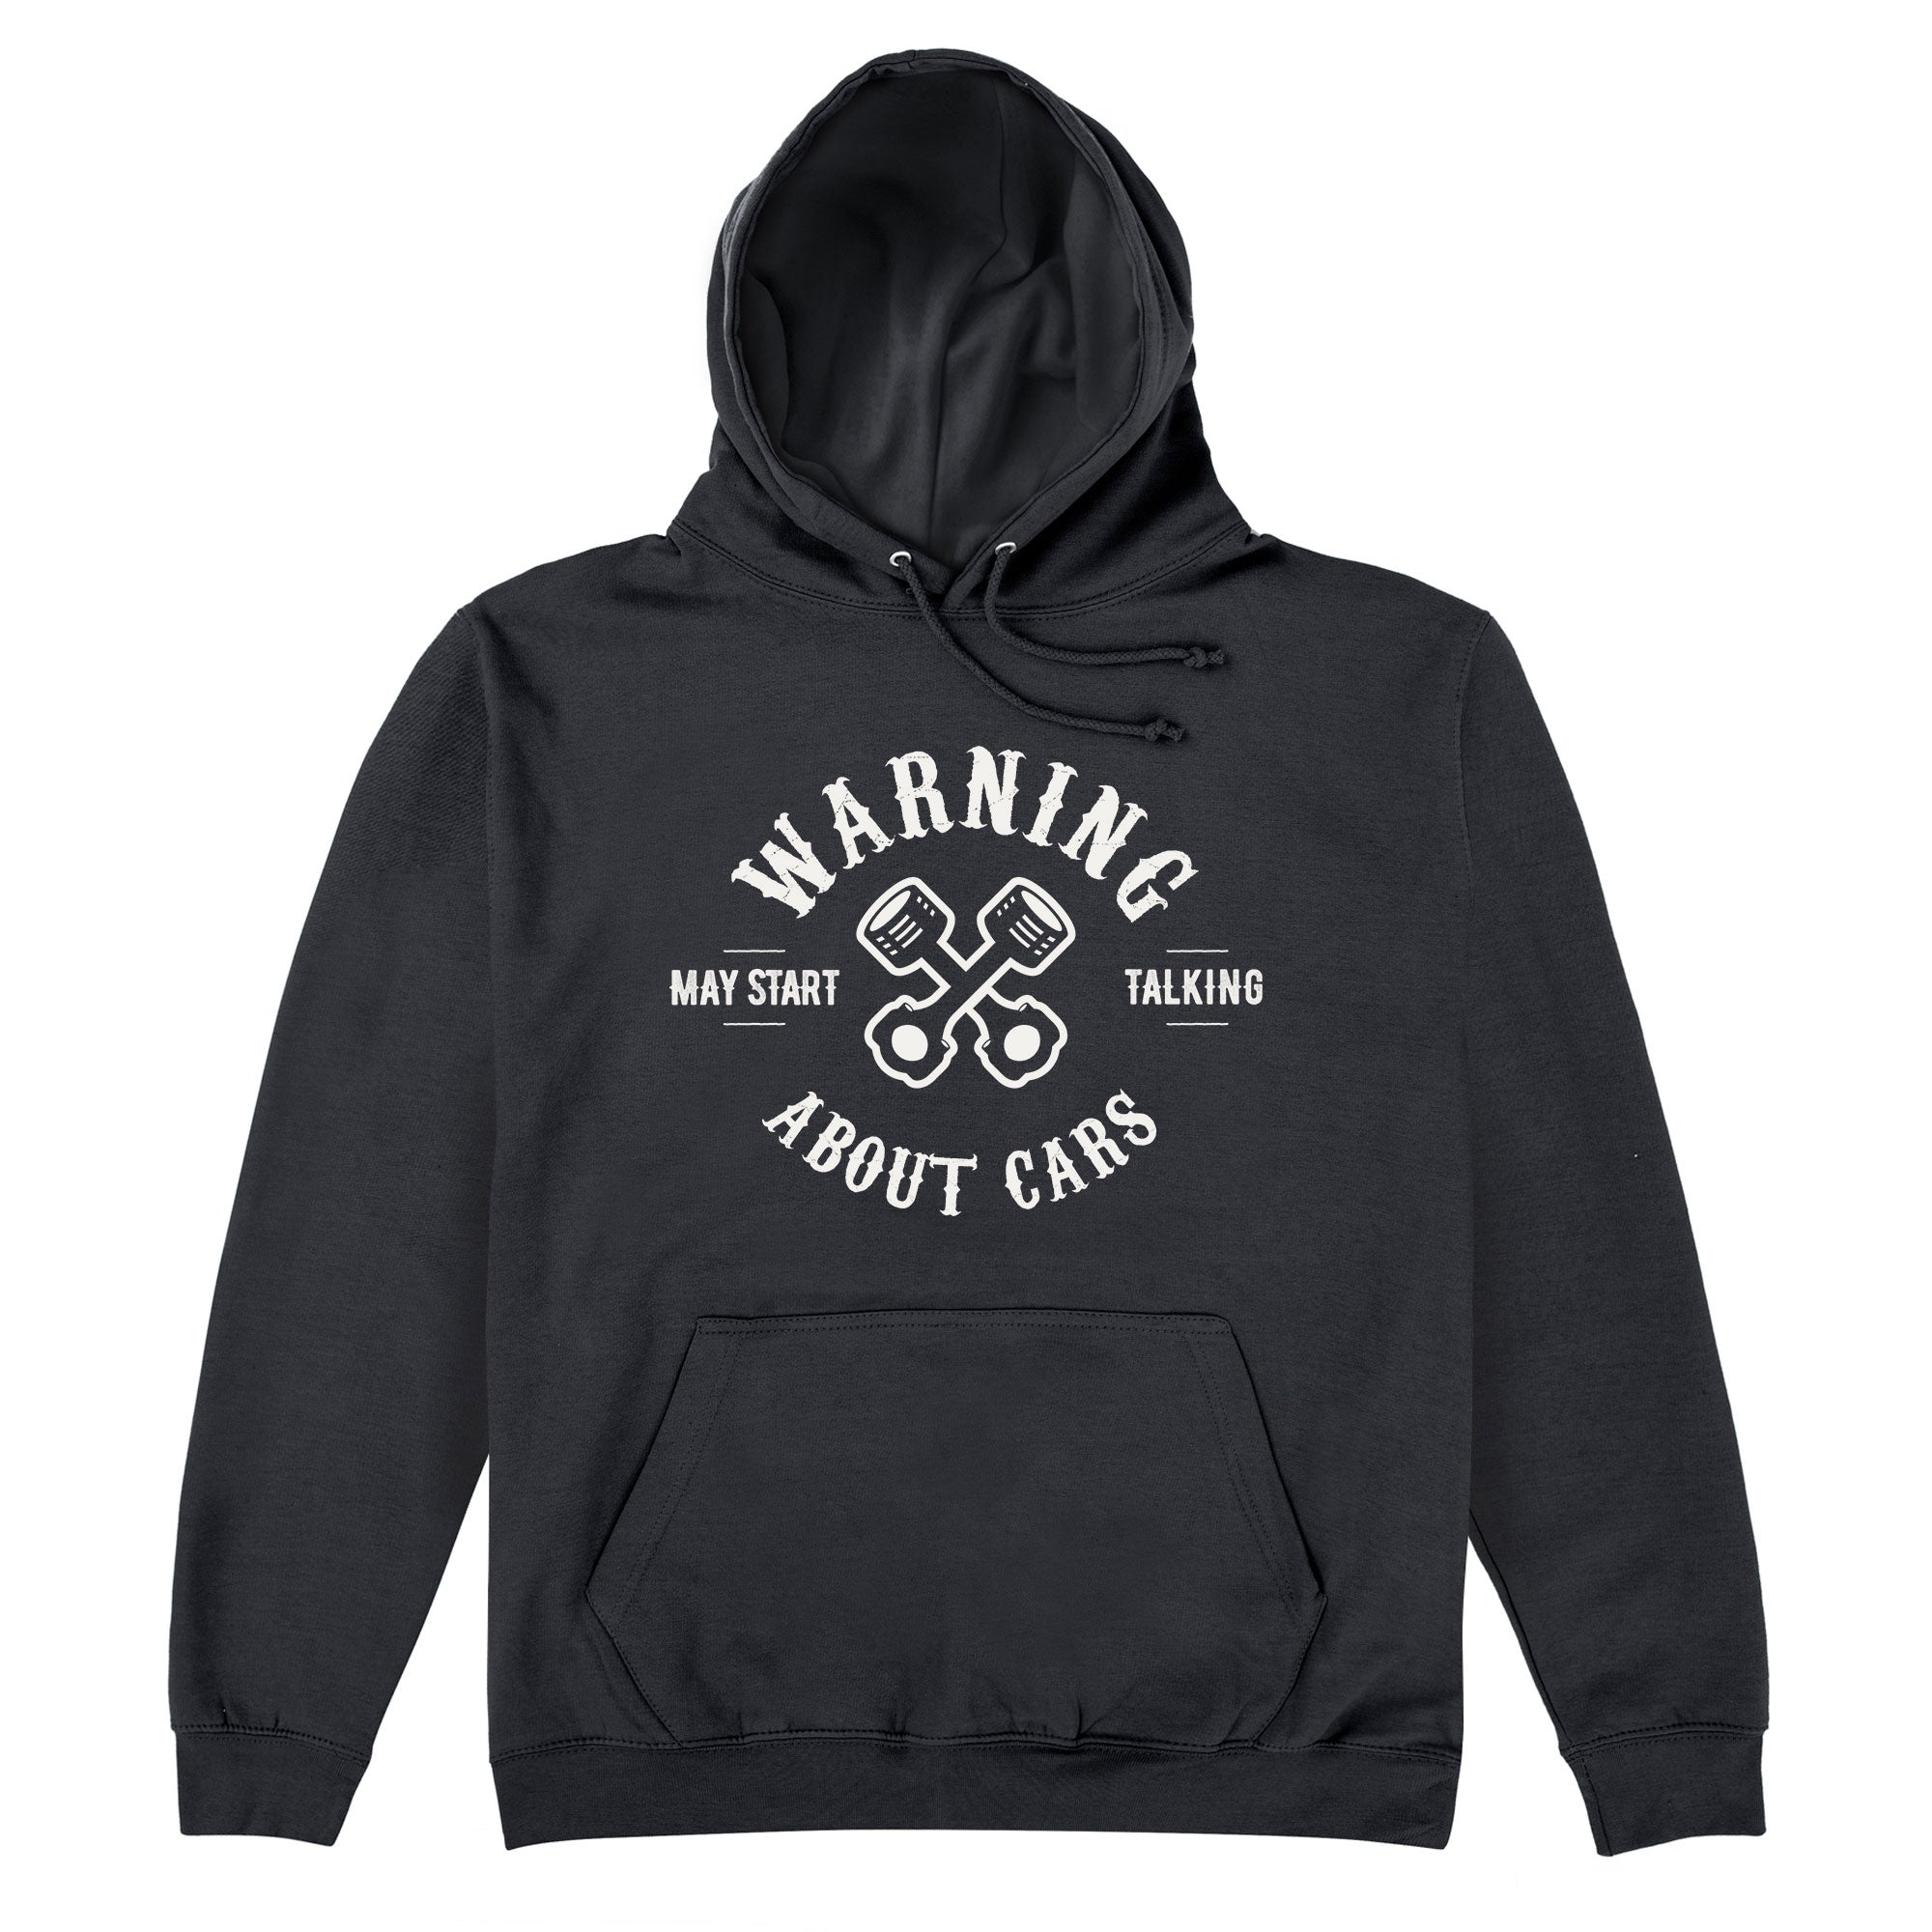 CHEAP May Start Talking About Cars Hoodie 25735409475 – Clothing Accessories